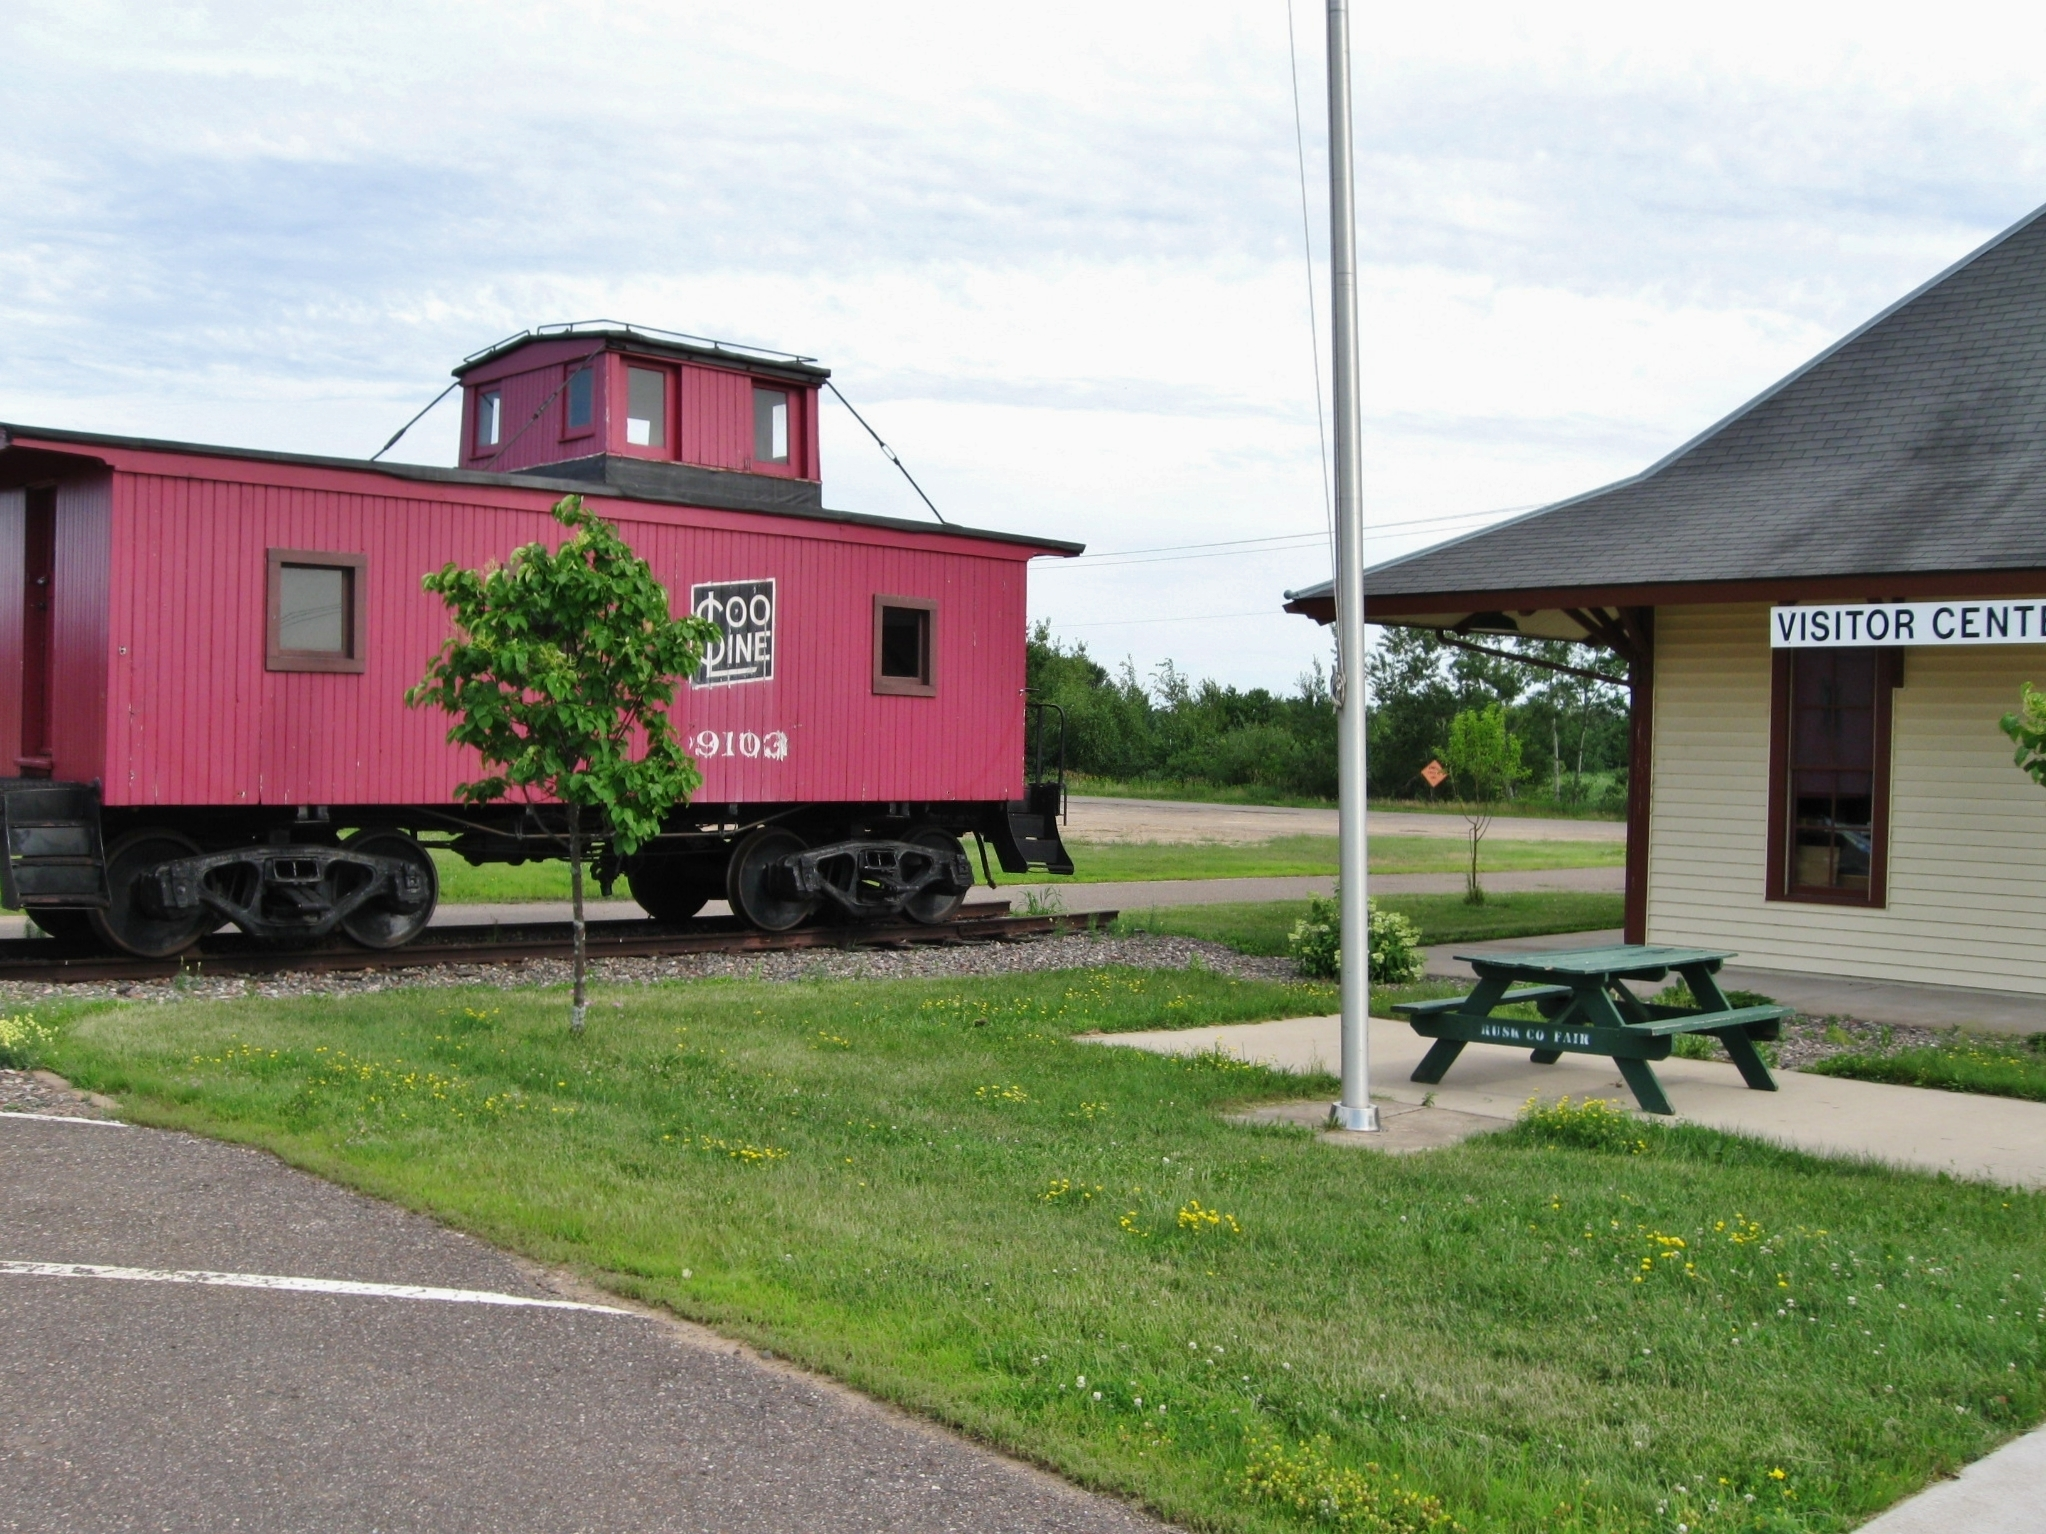 Caboose at Visitor